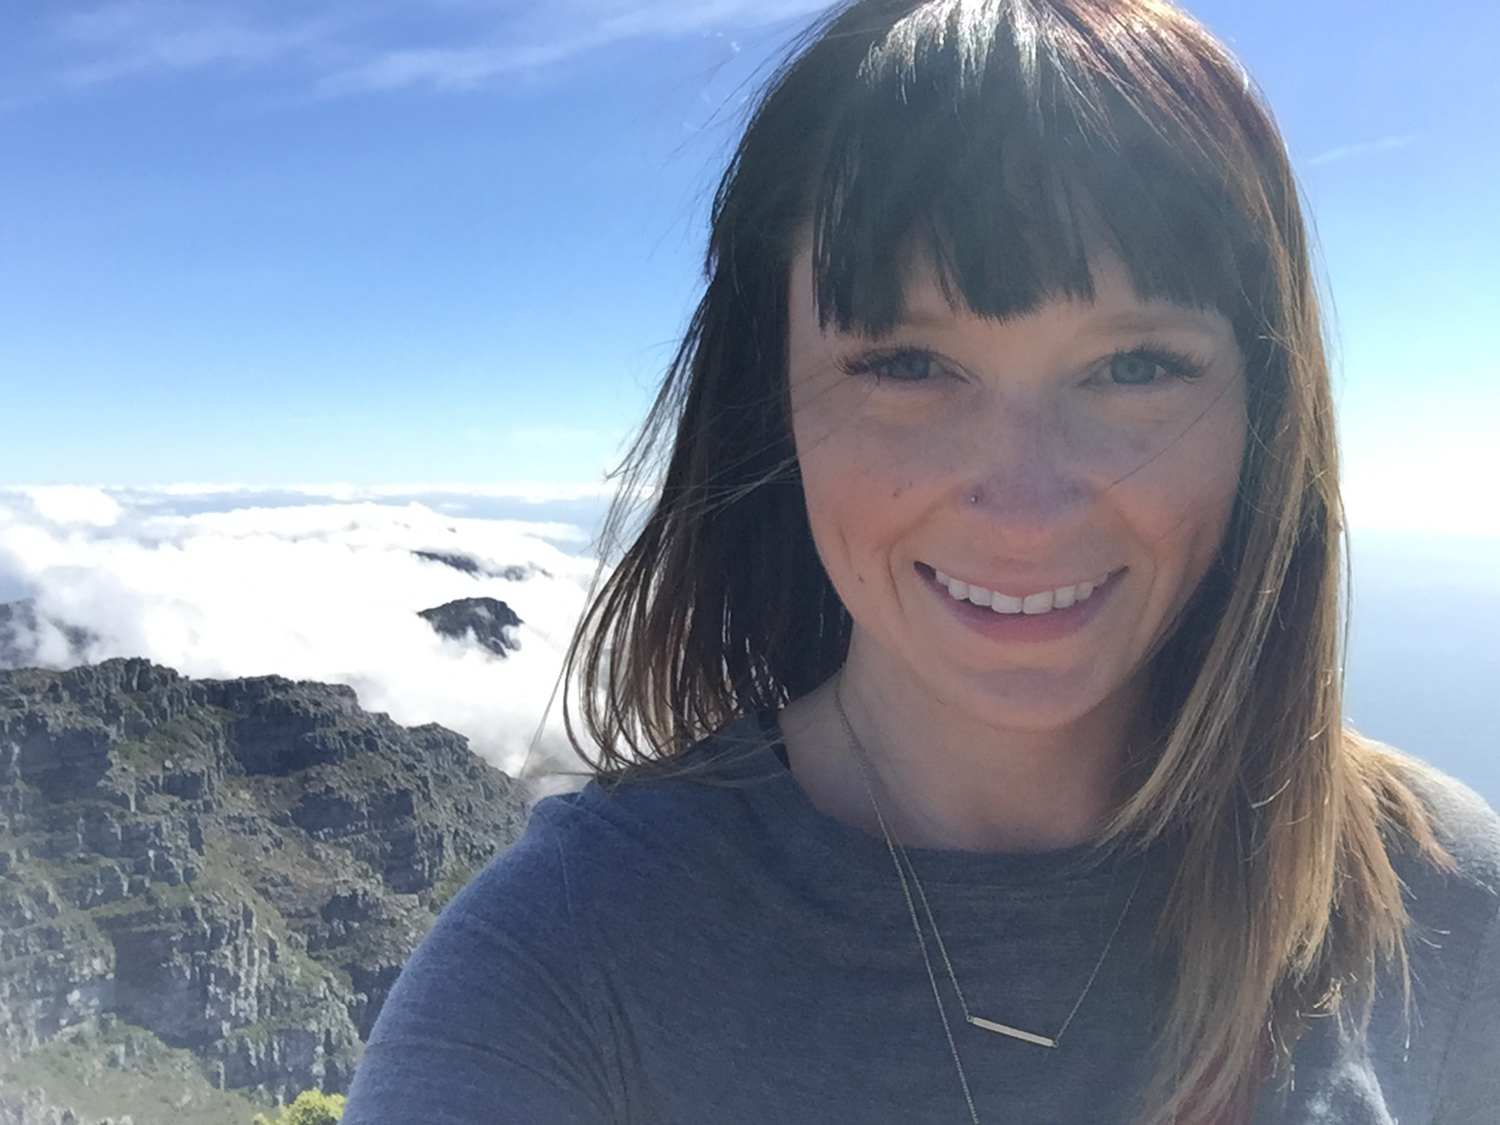 Ashley Dasent, Table Mountain, Cape Town - South Africa.